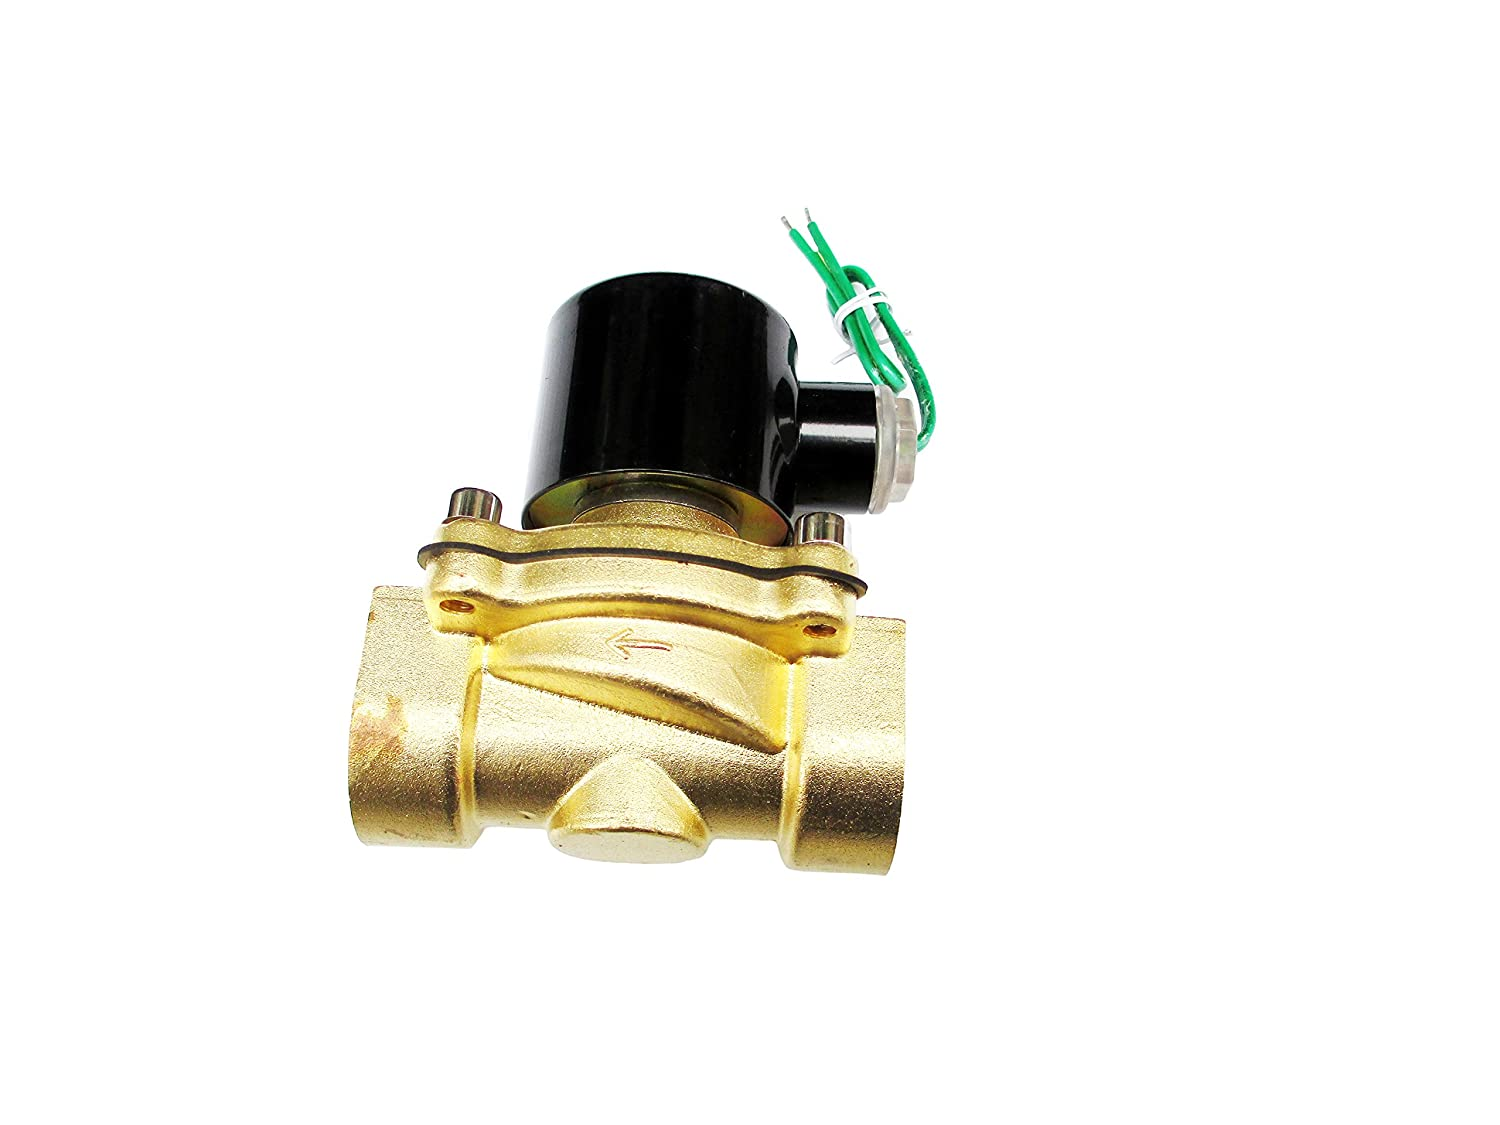 1 Inch Solenoid Valve 24VAC Brass Electric Air Water Gas Diesel Normally Closed NPT High Flow